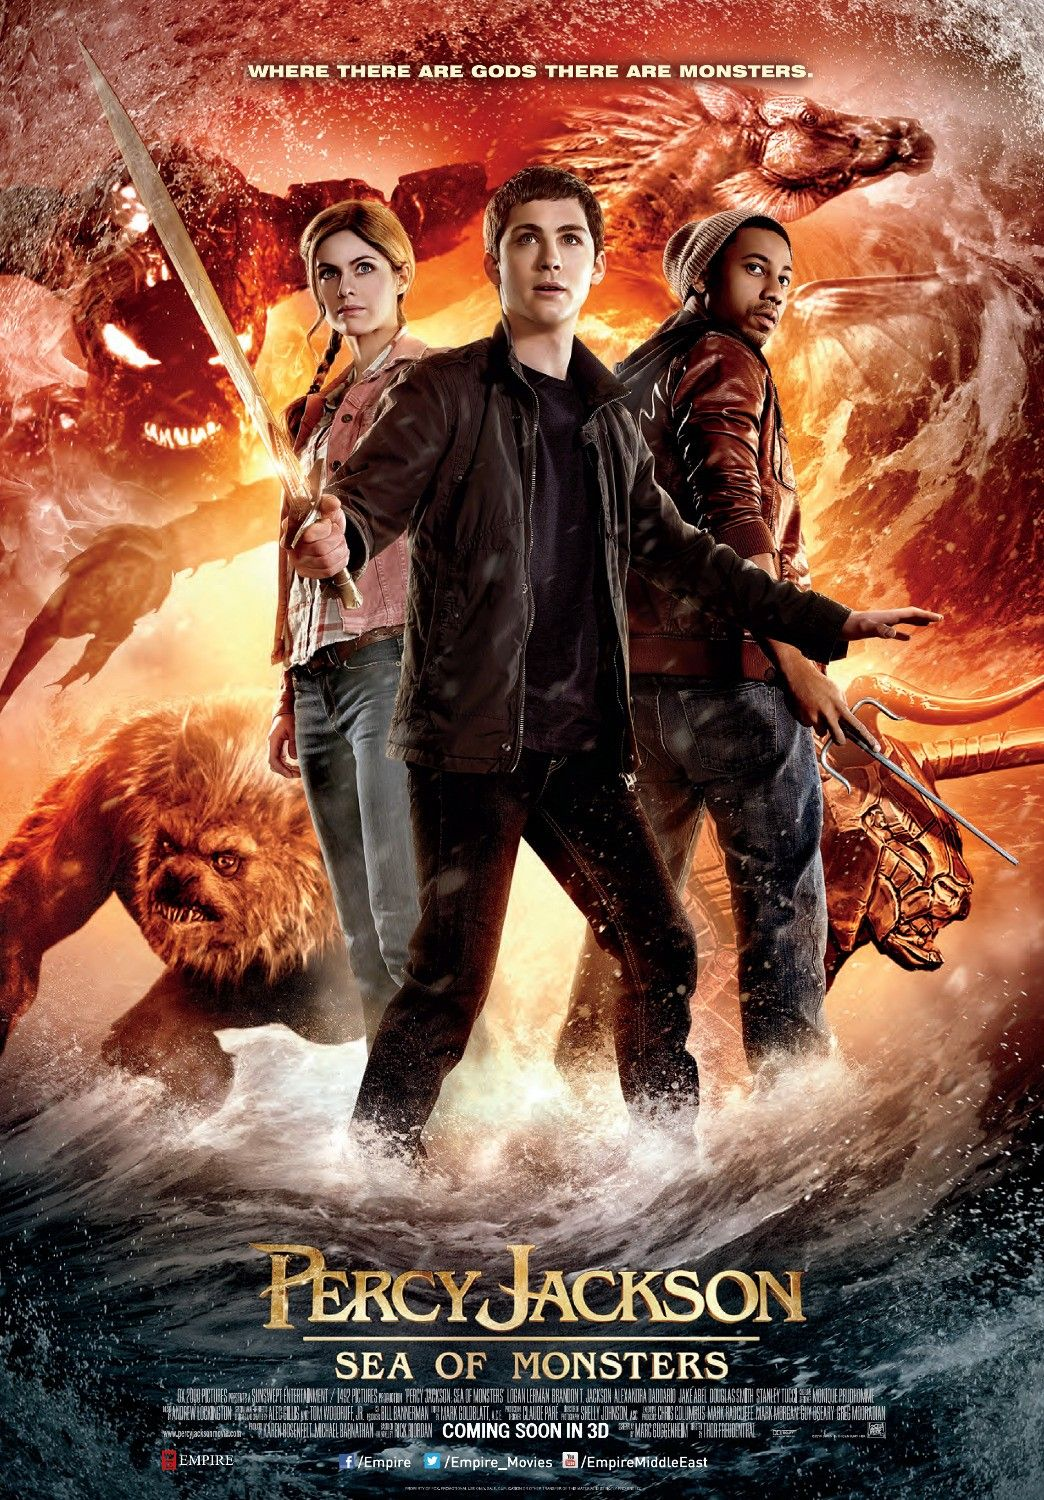 Percy Jackson Sea Of Monsters Extra Large Movie Poster Image Internet Movie Poster Awards Gallery Percy Jackson Film Percy Jackson Horrorfilme